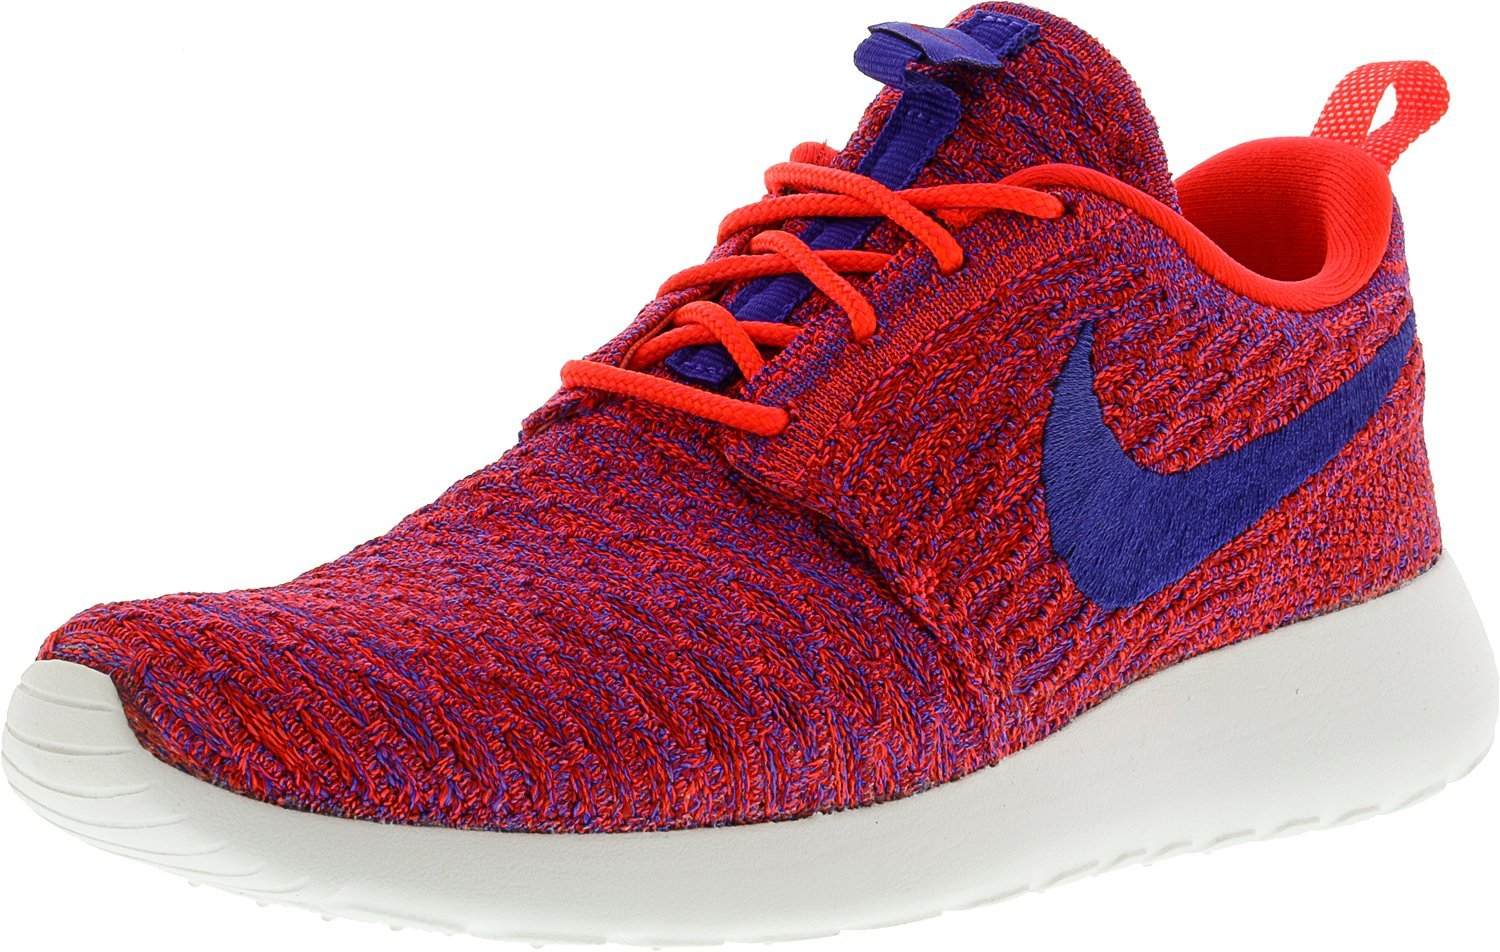 NIKE Womens Roshe One Flyknit Flyknit Colorblock Running Shoes B01MDKNRZ2 7.5 B(M) US|Bright Crimson / Persian Violet-university Red